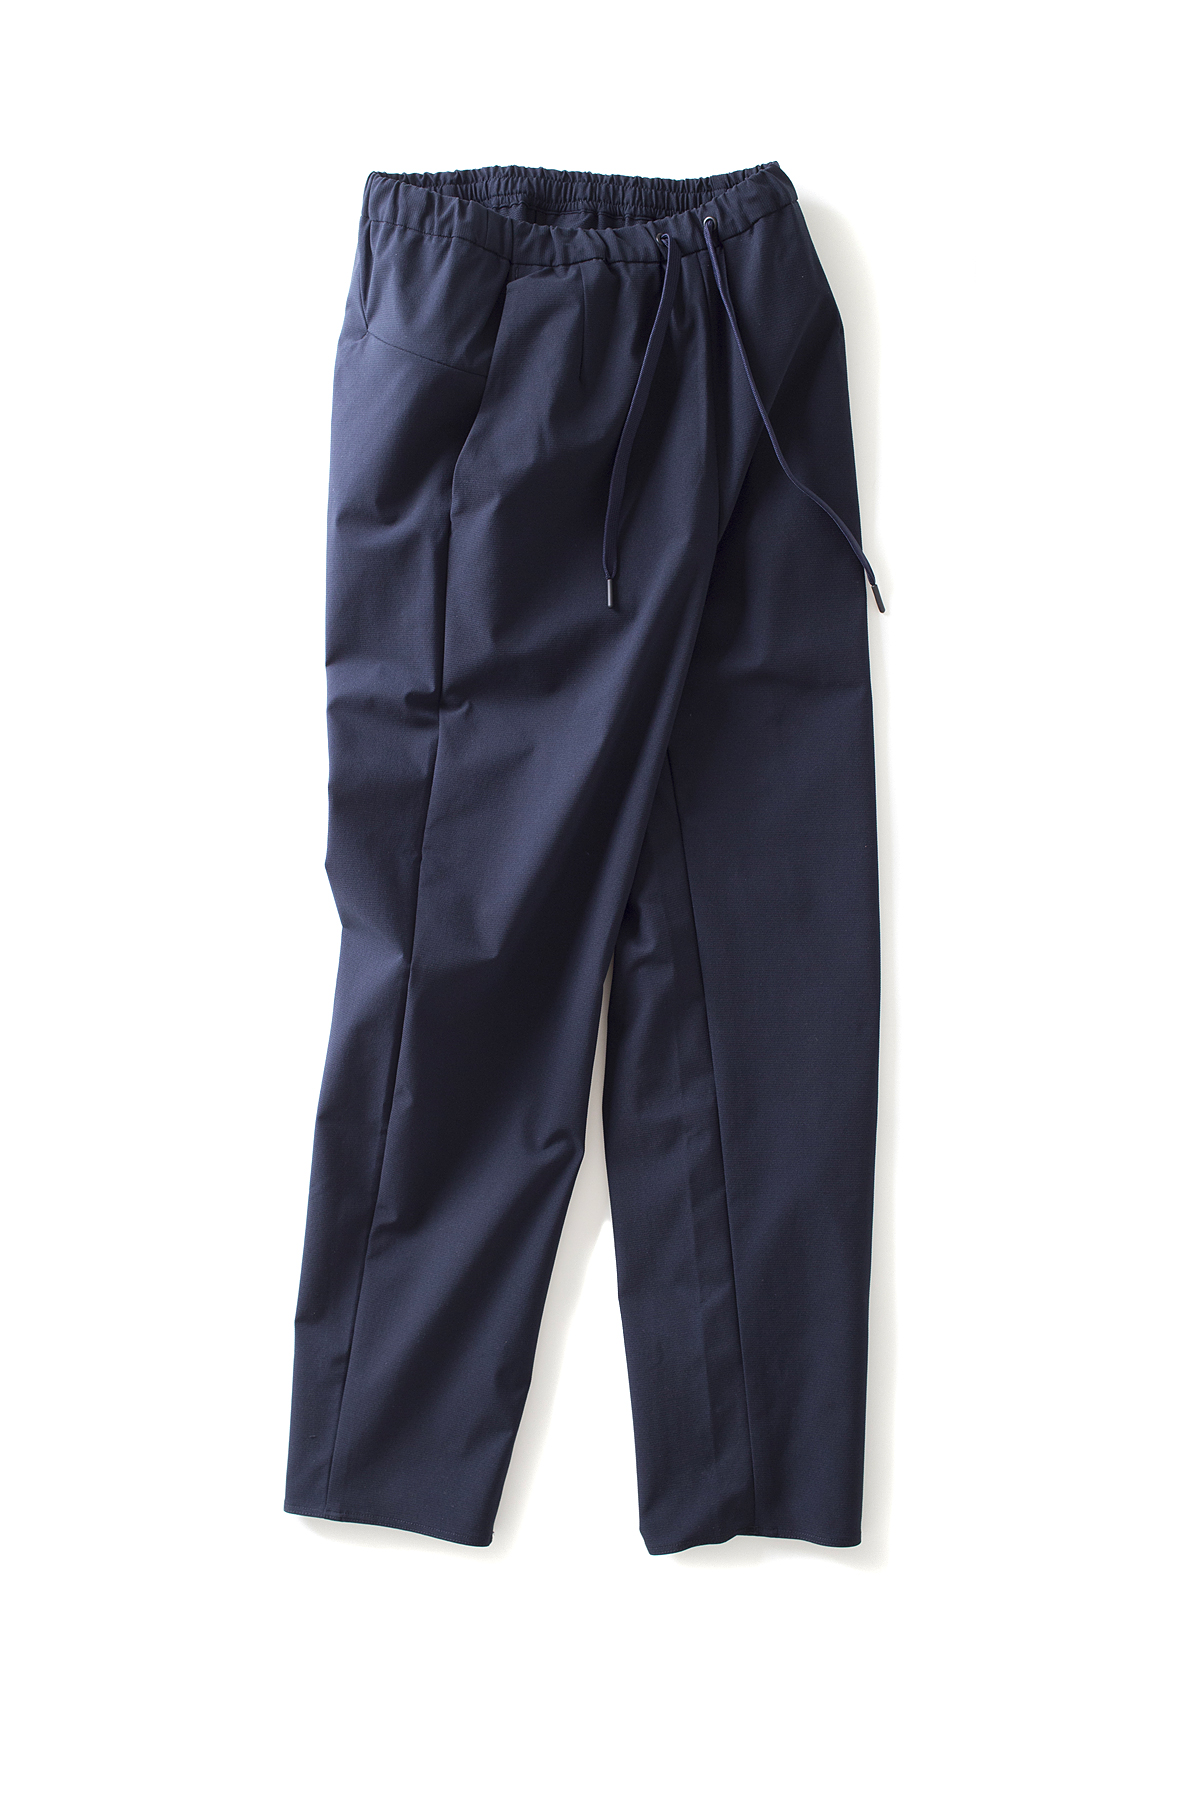 TEATORA : Wallet Pants FF (Navy)